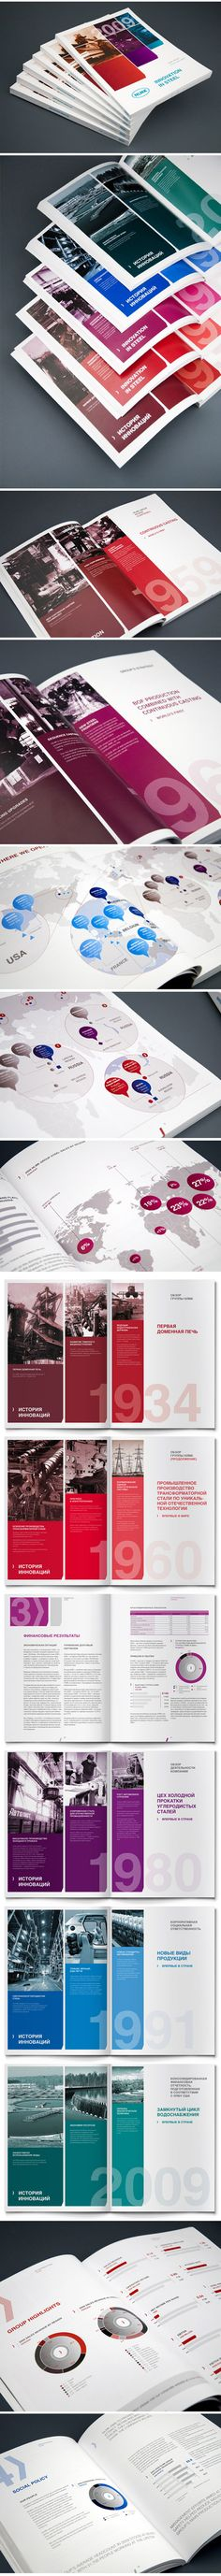 Good layout and use of colour. Annual report NLMK by Andrew Gorkovenko, via Behance Design Brochure, Booklet Design, Graphic Design Layouts, Graphic Design Print, Graphic Design Typography, Graphic Design Inspiration, Layout Design, Branding Design, Identity Branding